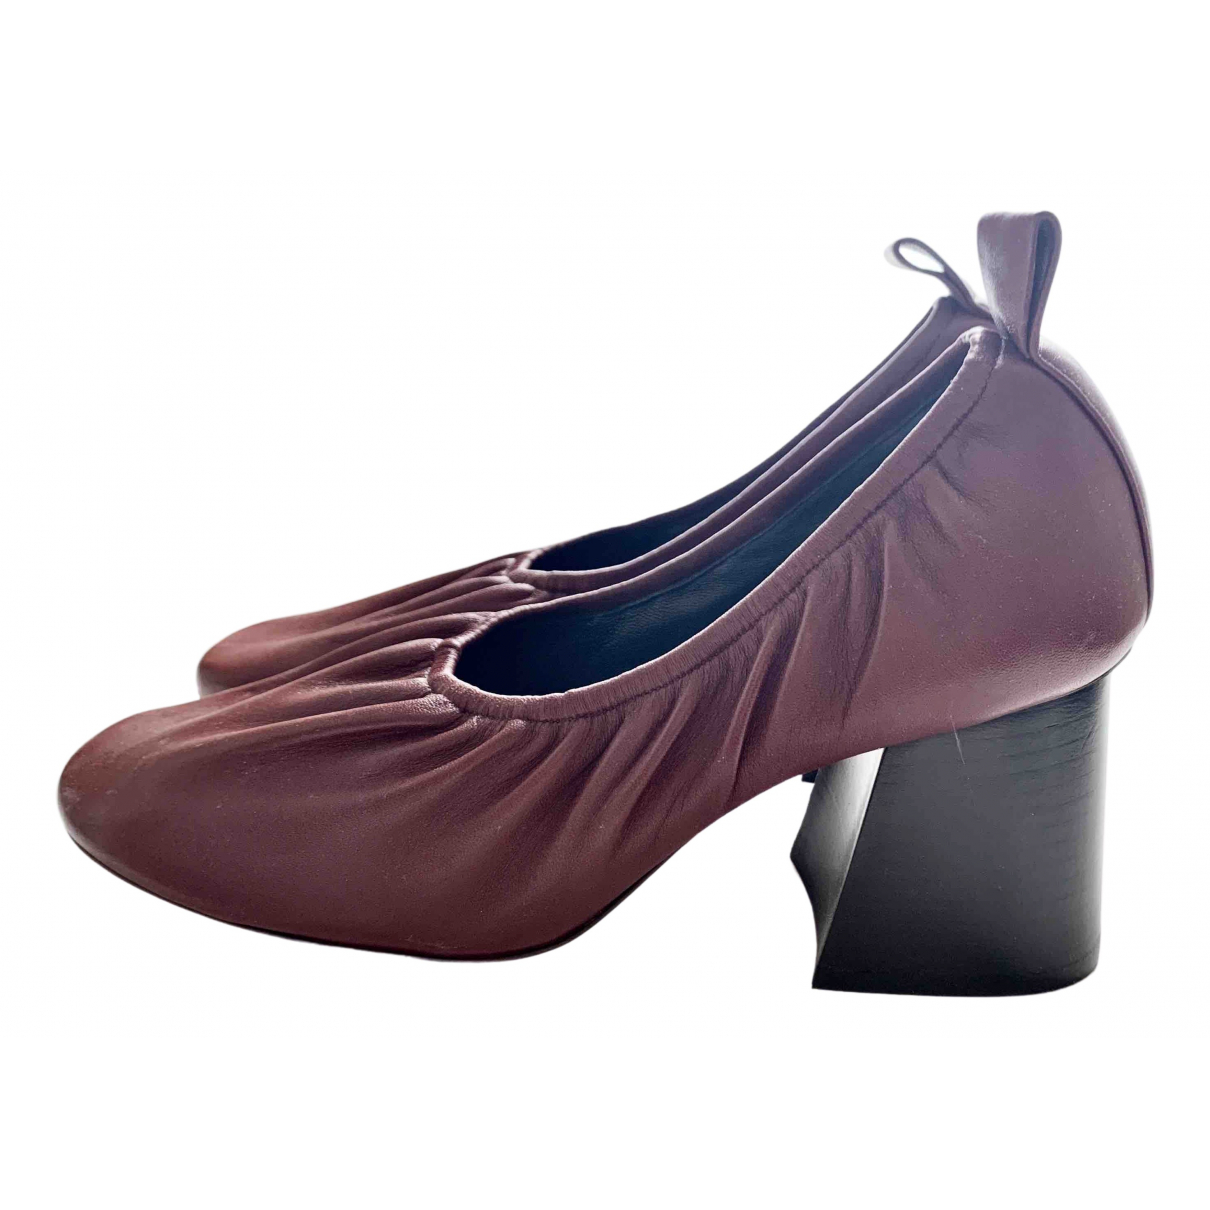 Celine Soft Ballerina Burgundy Leather Heels for Women 38.5 EU